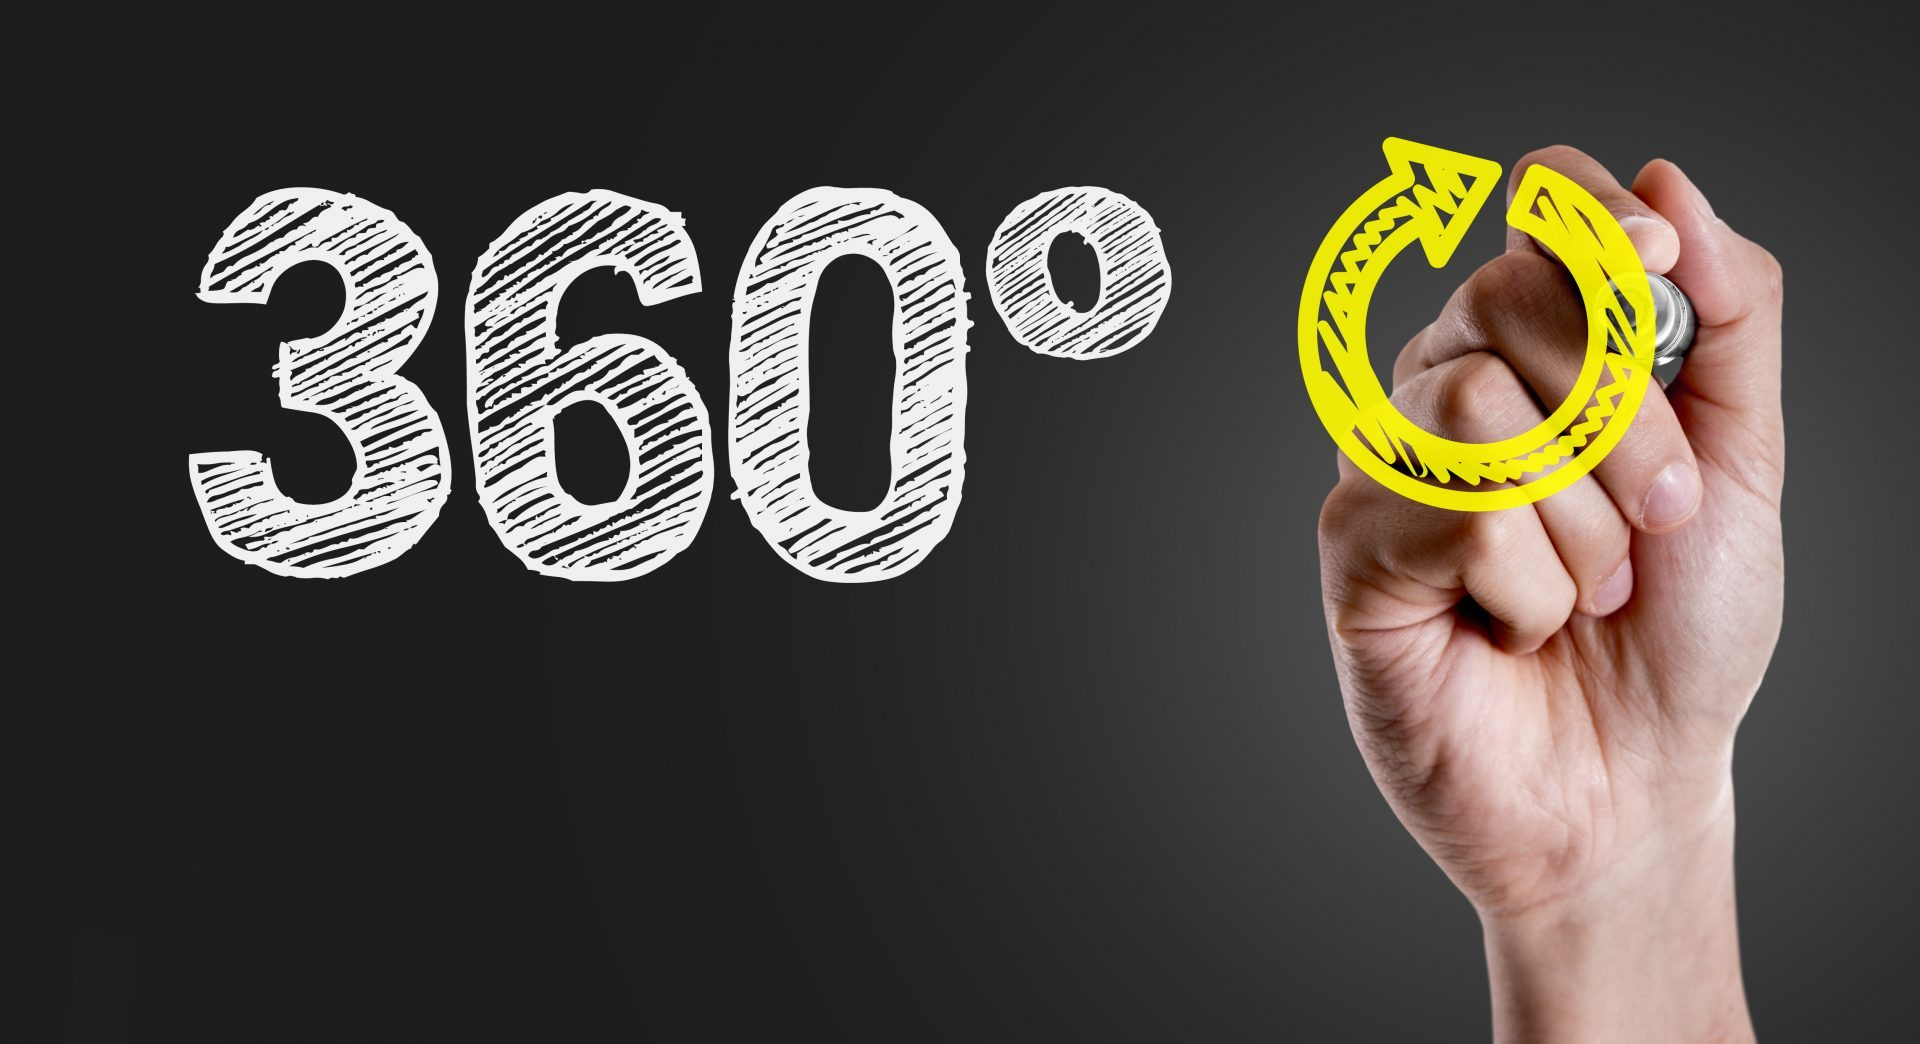 How to Improve your 360 Degree Feedback Survey